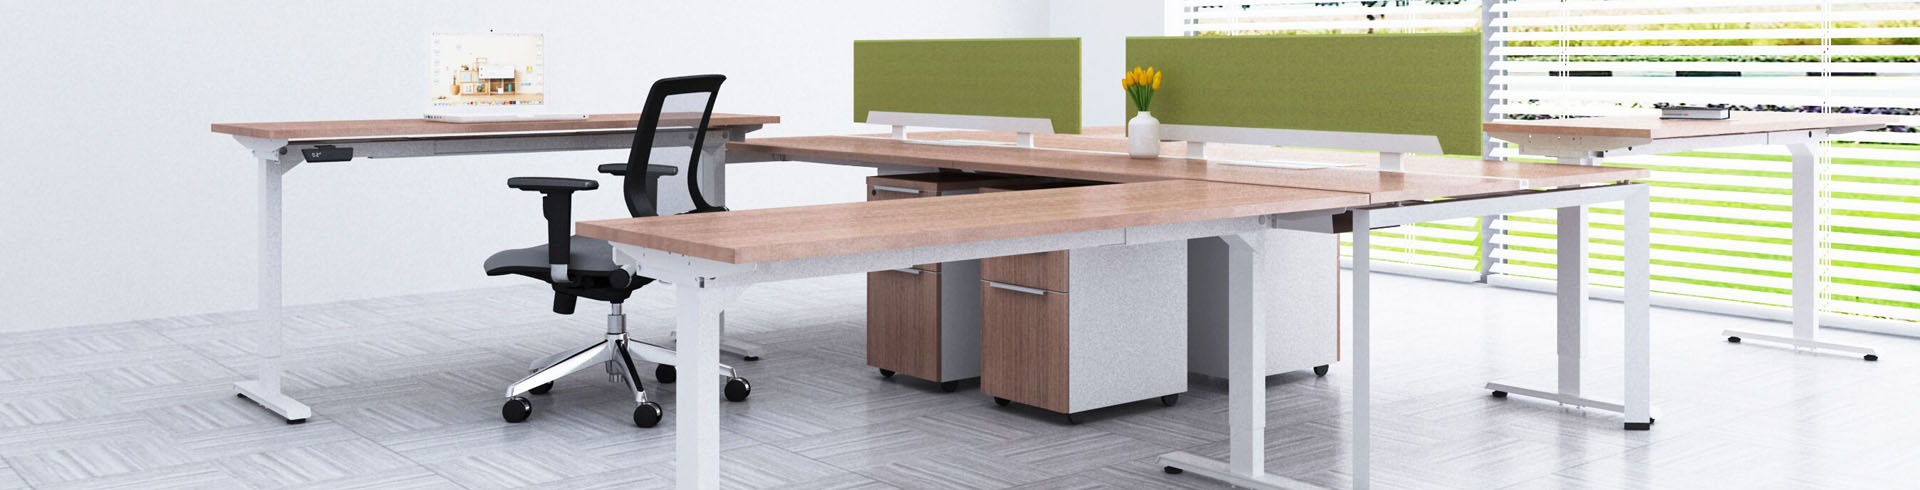 everything for offices | new & used office furniture in denver